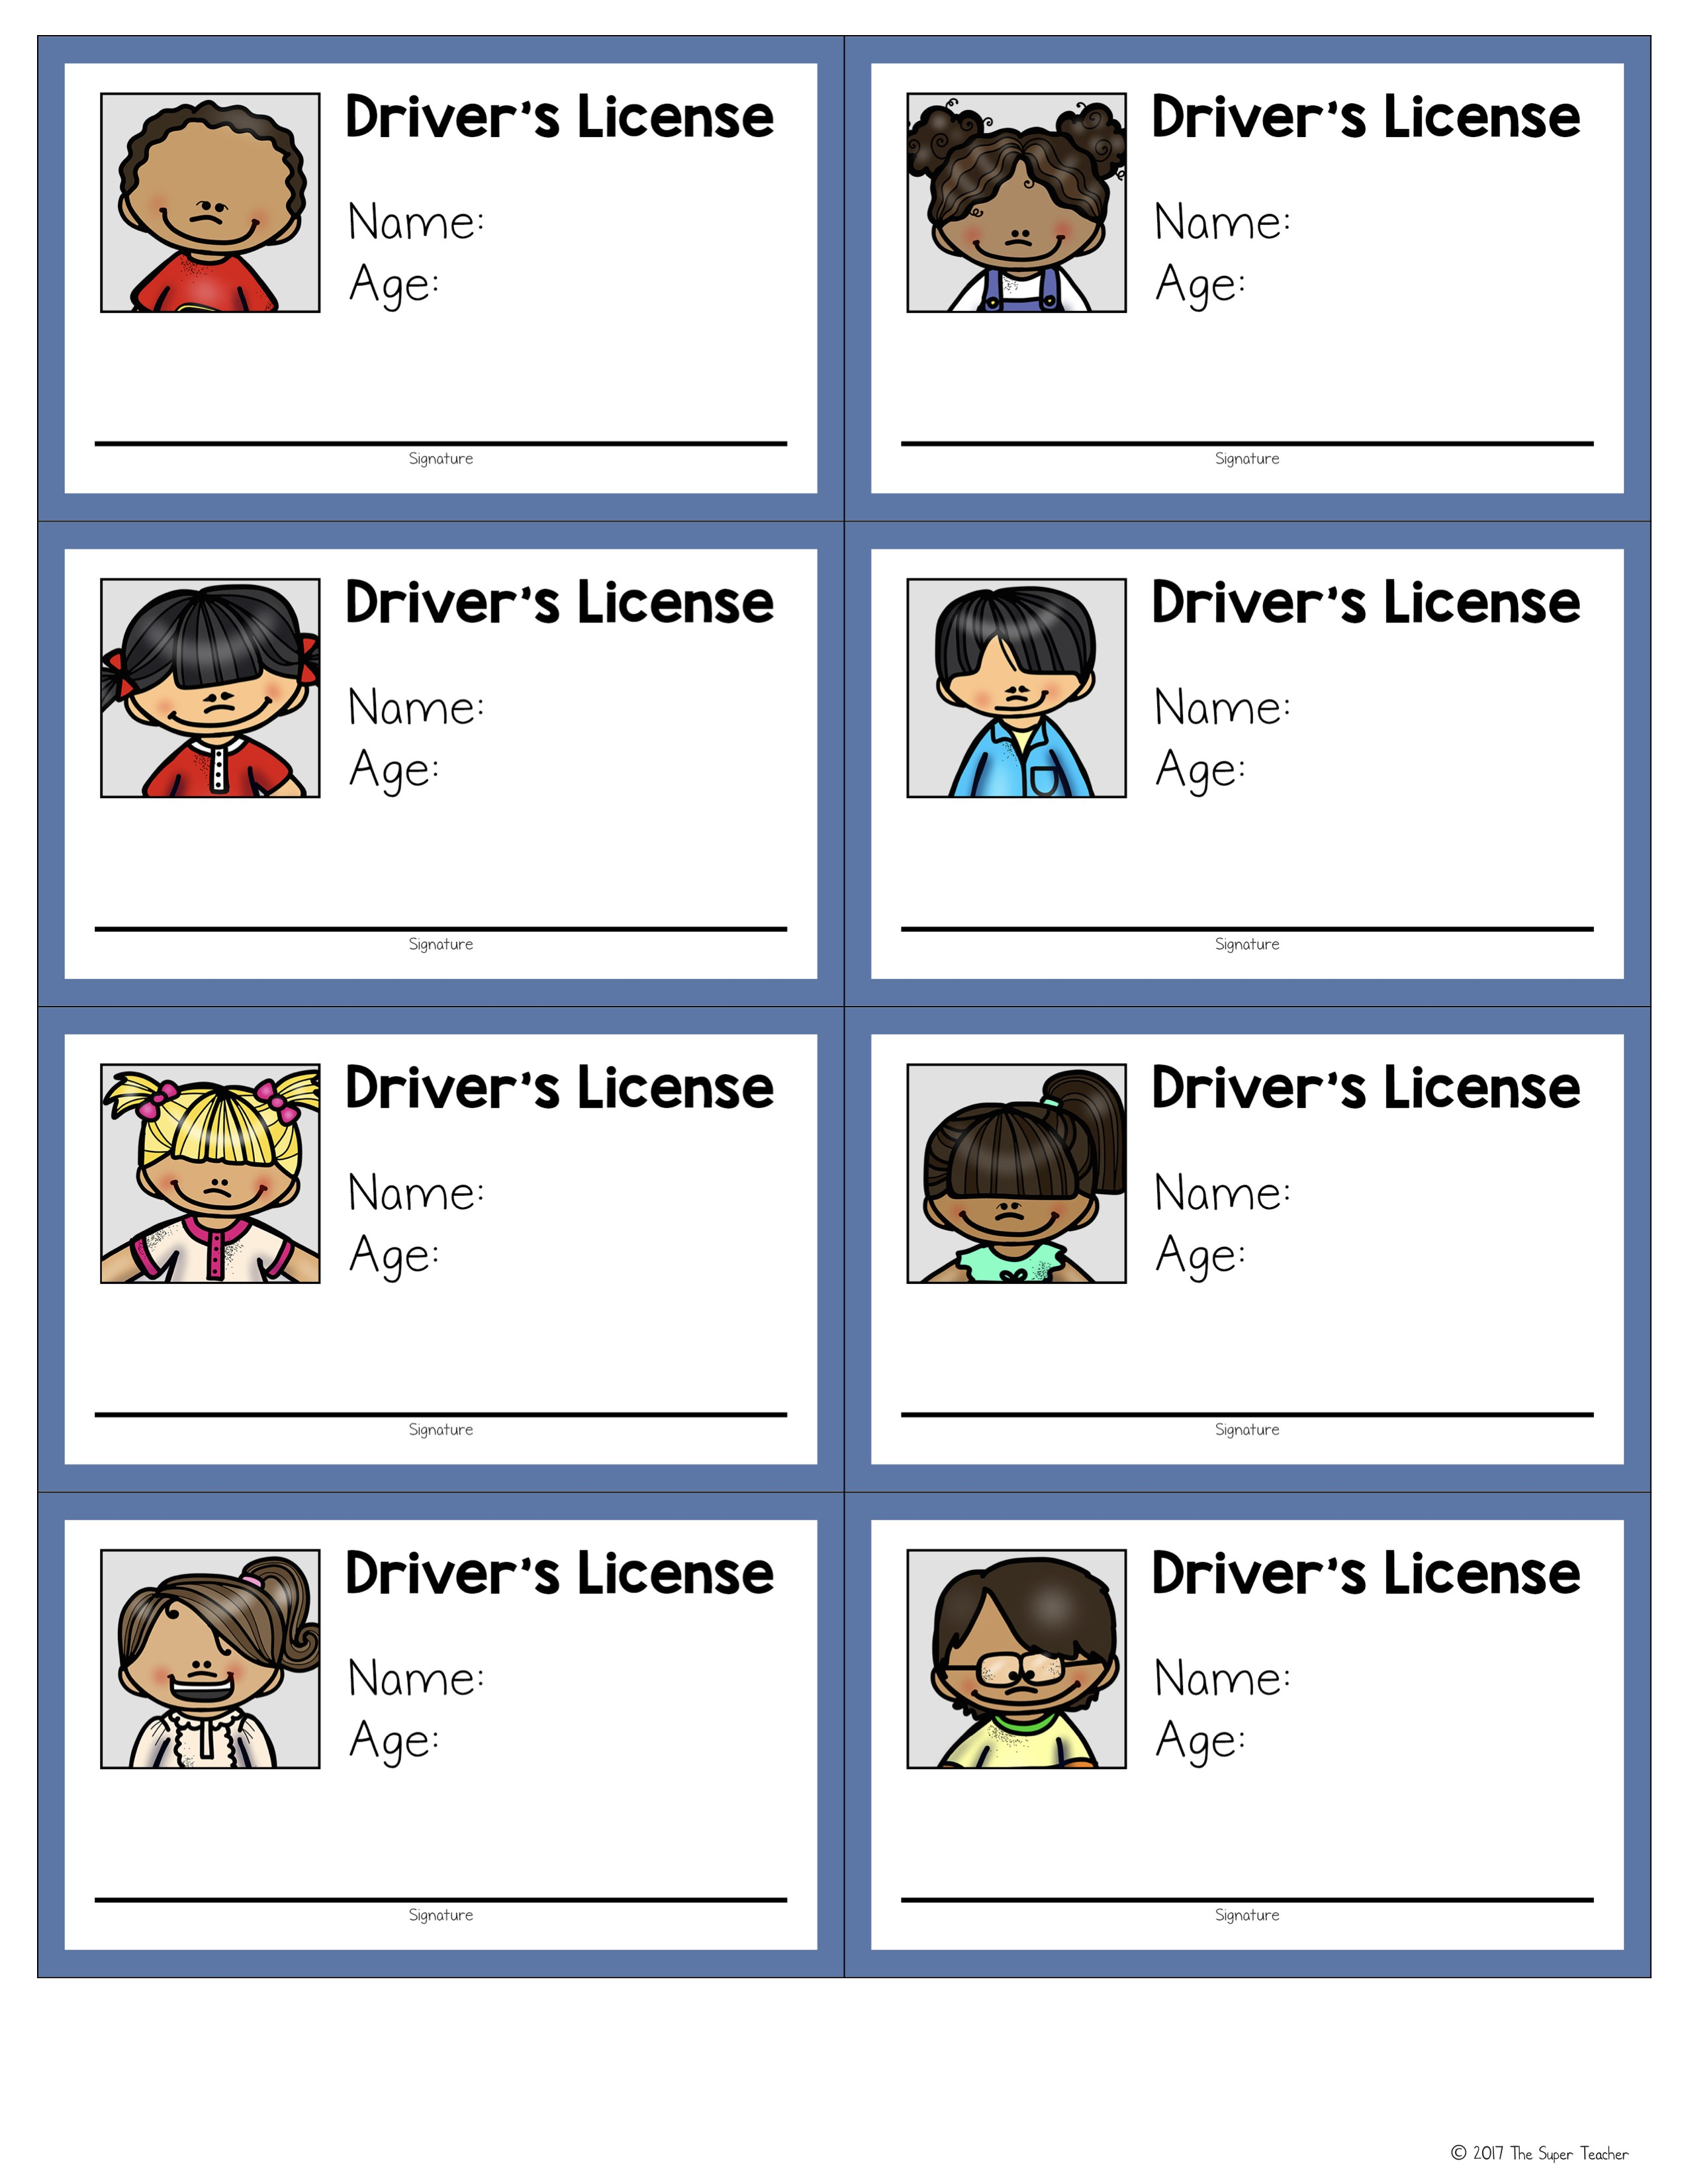 Drivers license clipart. How to make a